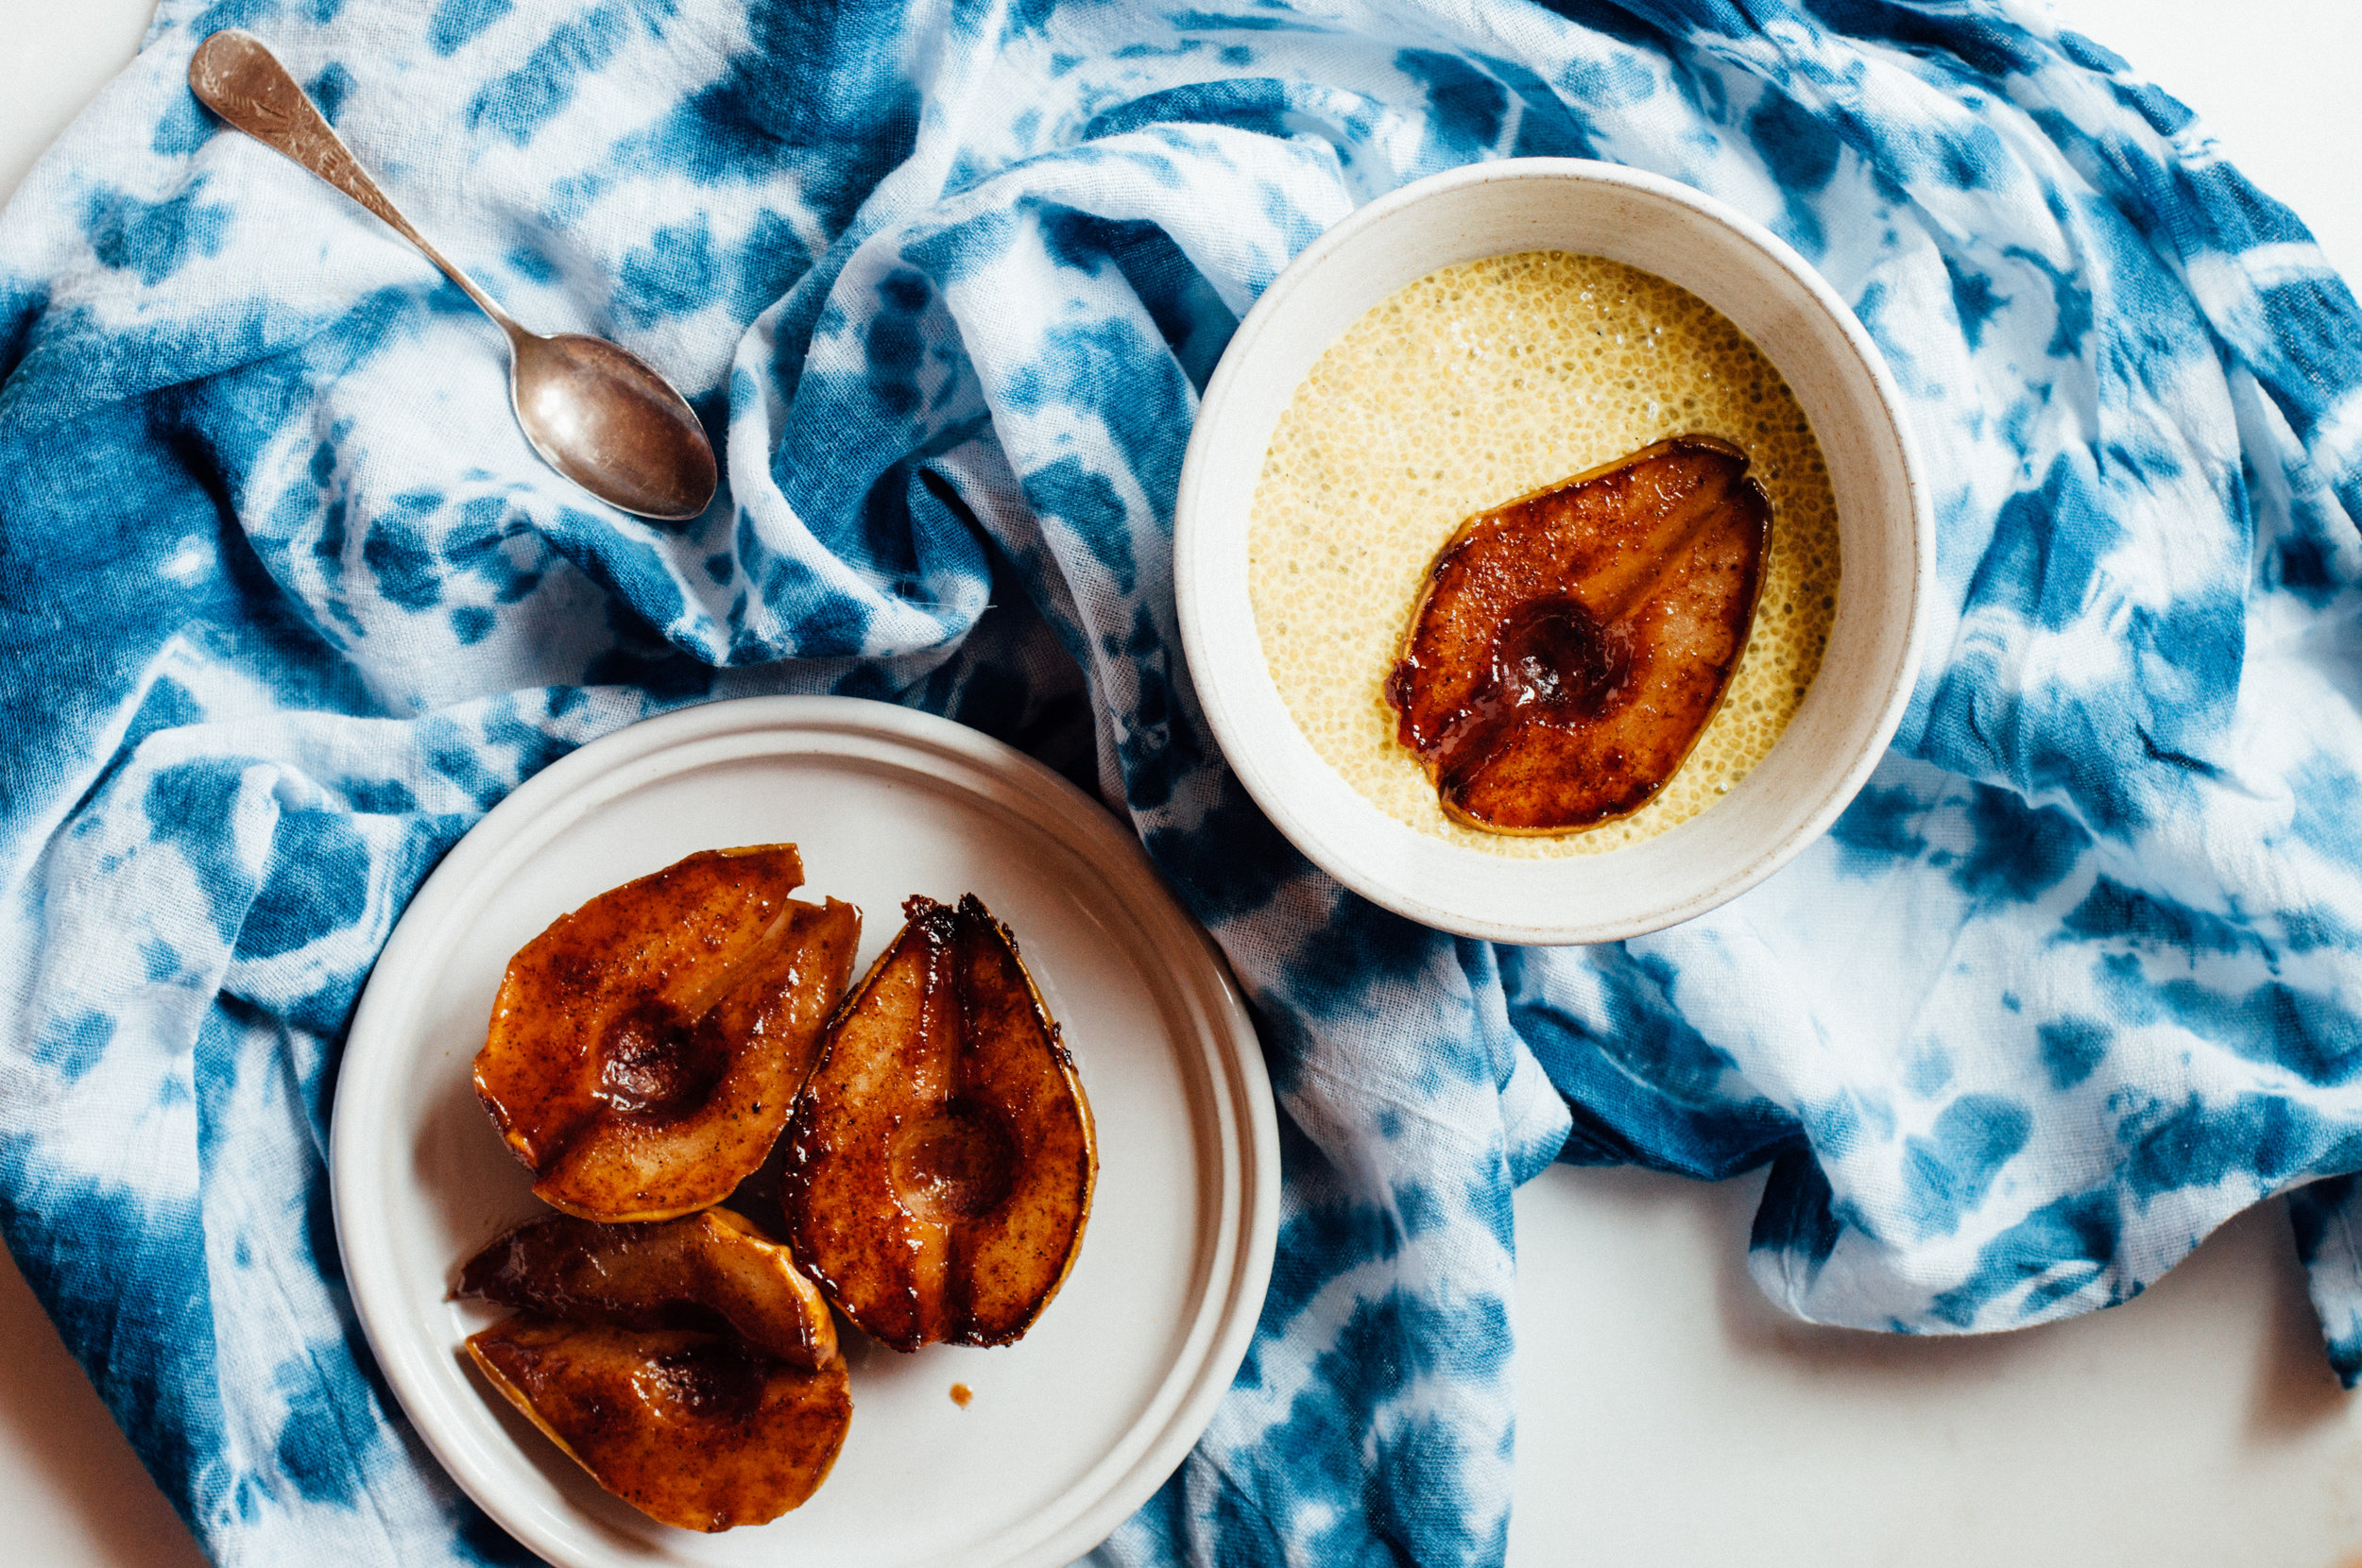 Golden Milk Chia Pudding with Chai Roasted Pears